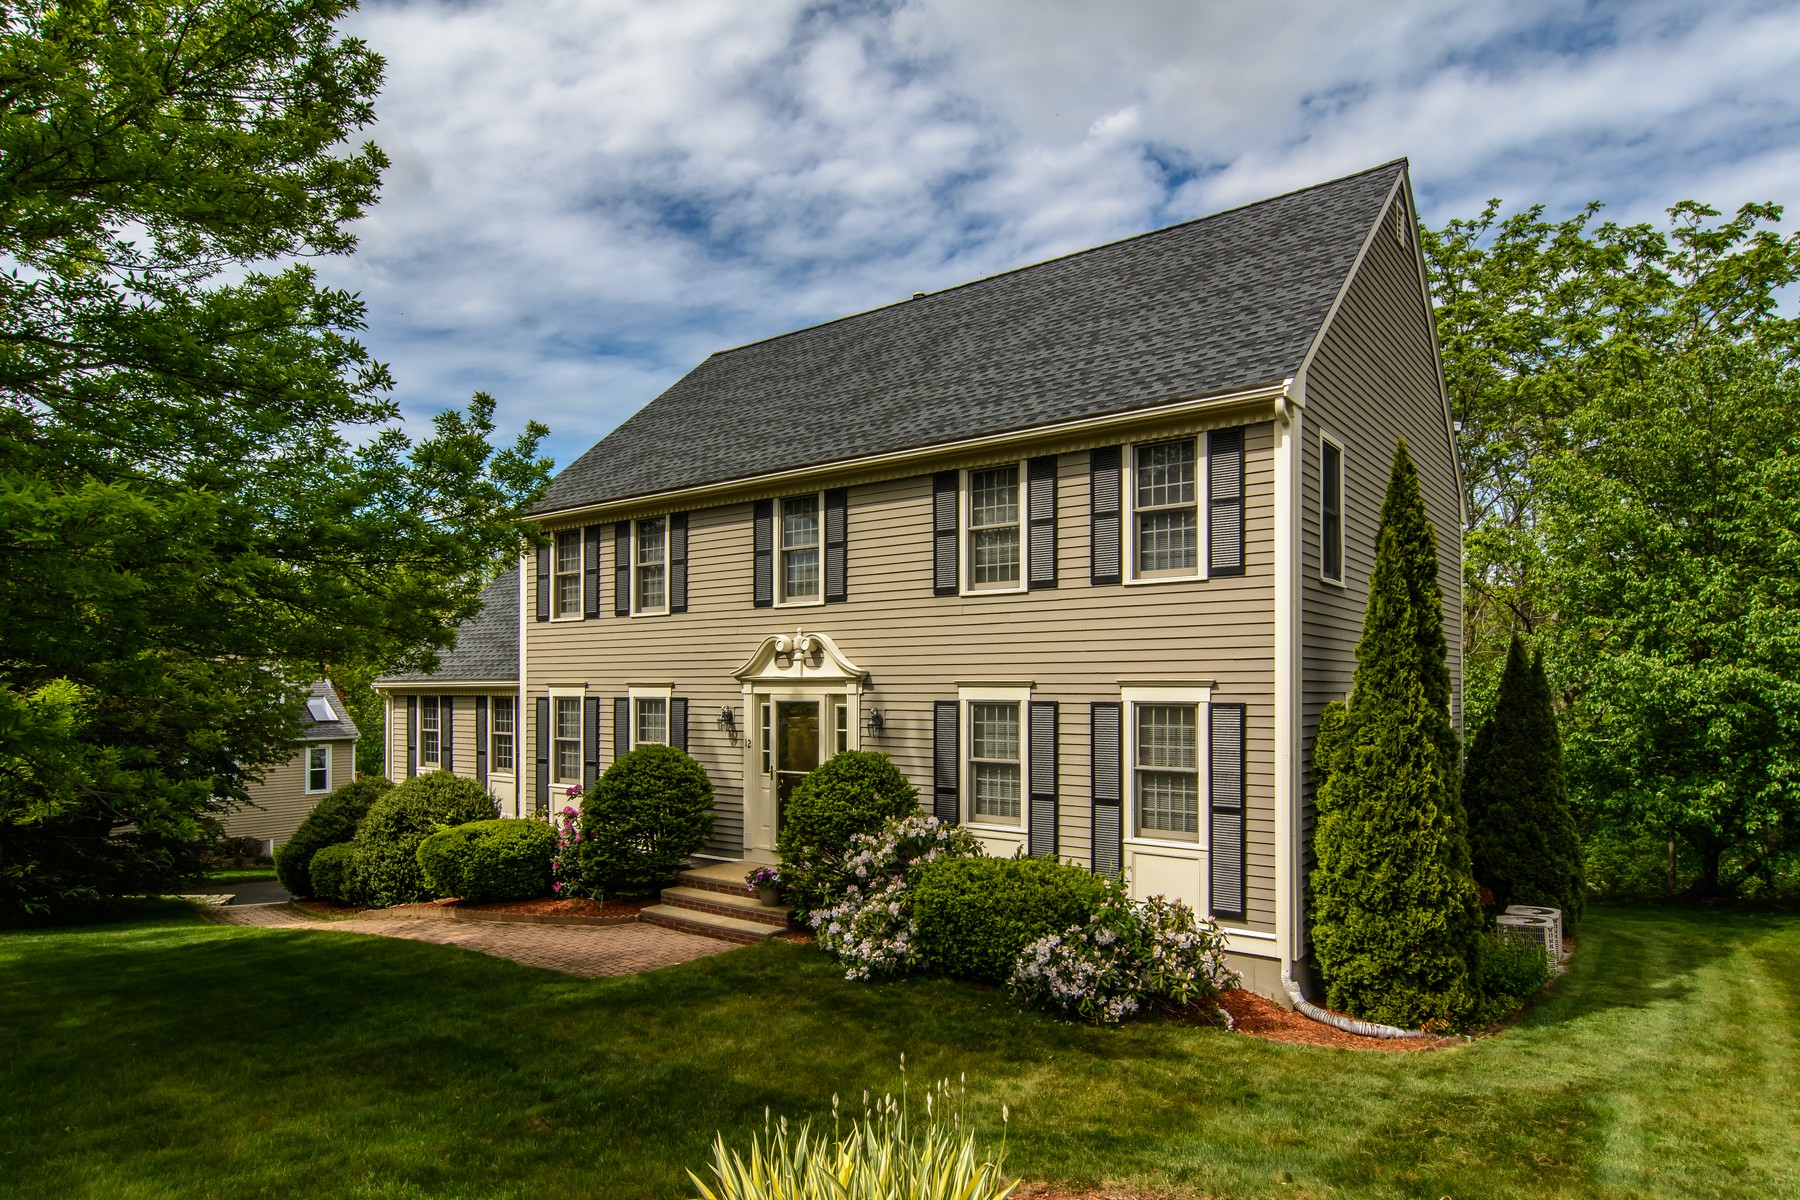 Single Family Home for Sale at Exquisite Colonial 12 Piccadilly Way Westborough, Massachusetts 01581 United States